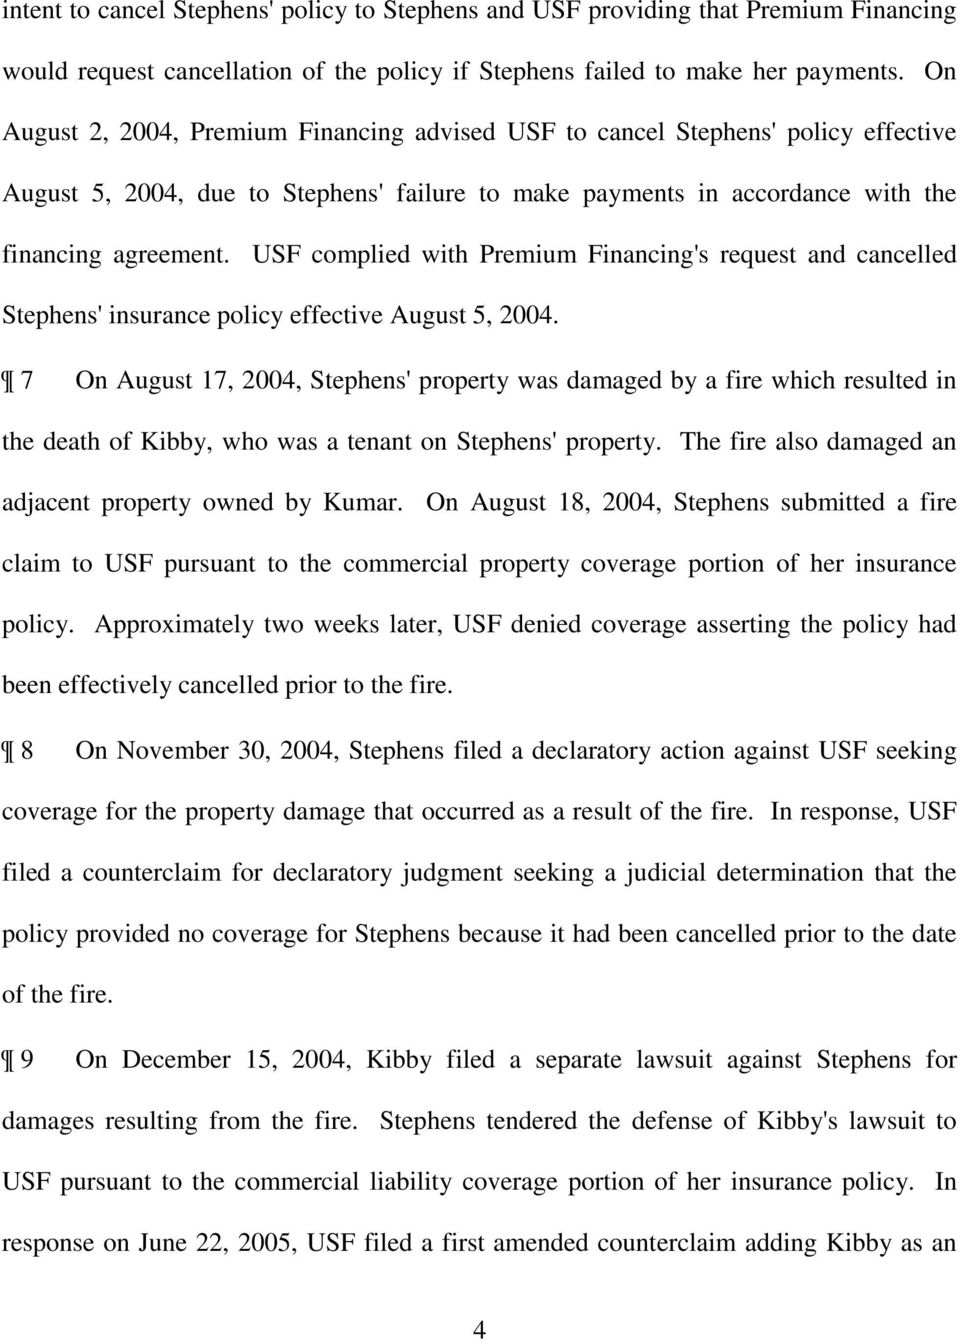 USF complied with Premium Financing's request and cancelled Stephens' insurance policy effective August 5, 2004.